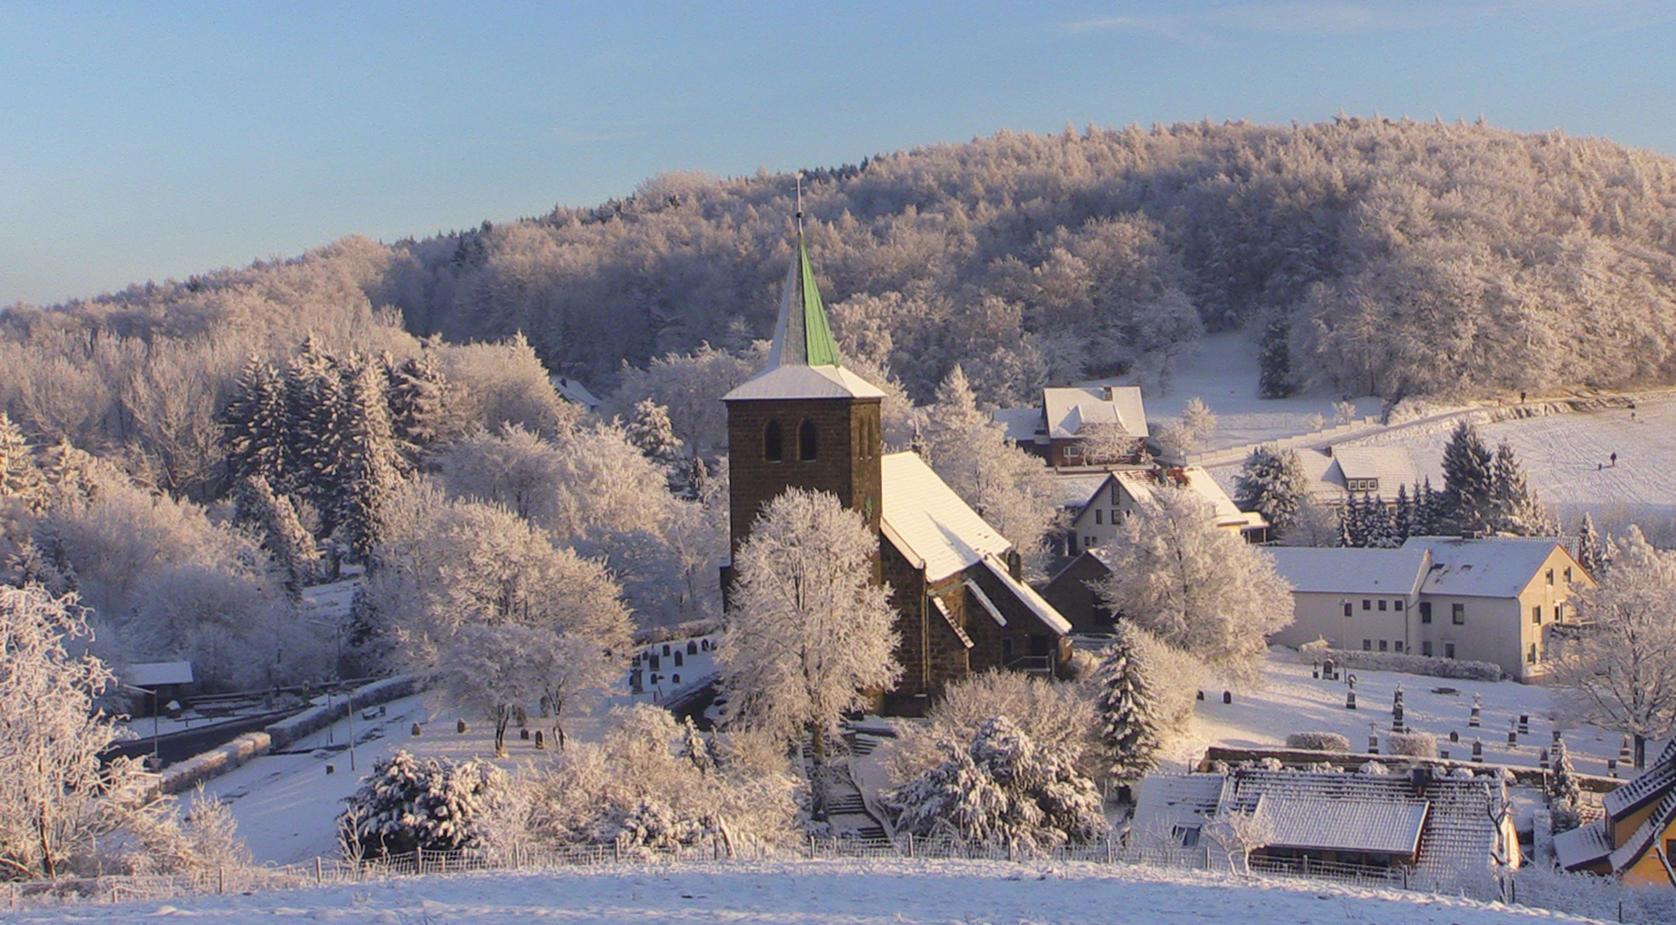 Winter-Bergkirchen_4256-blvg-1700on